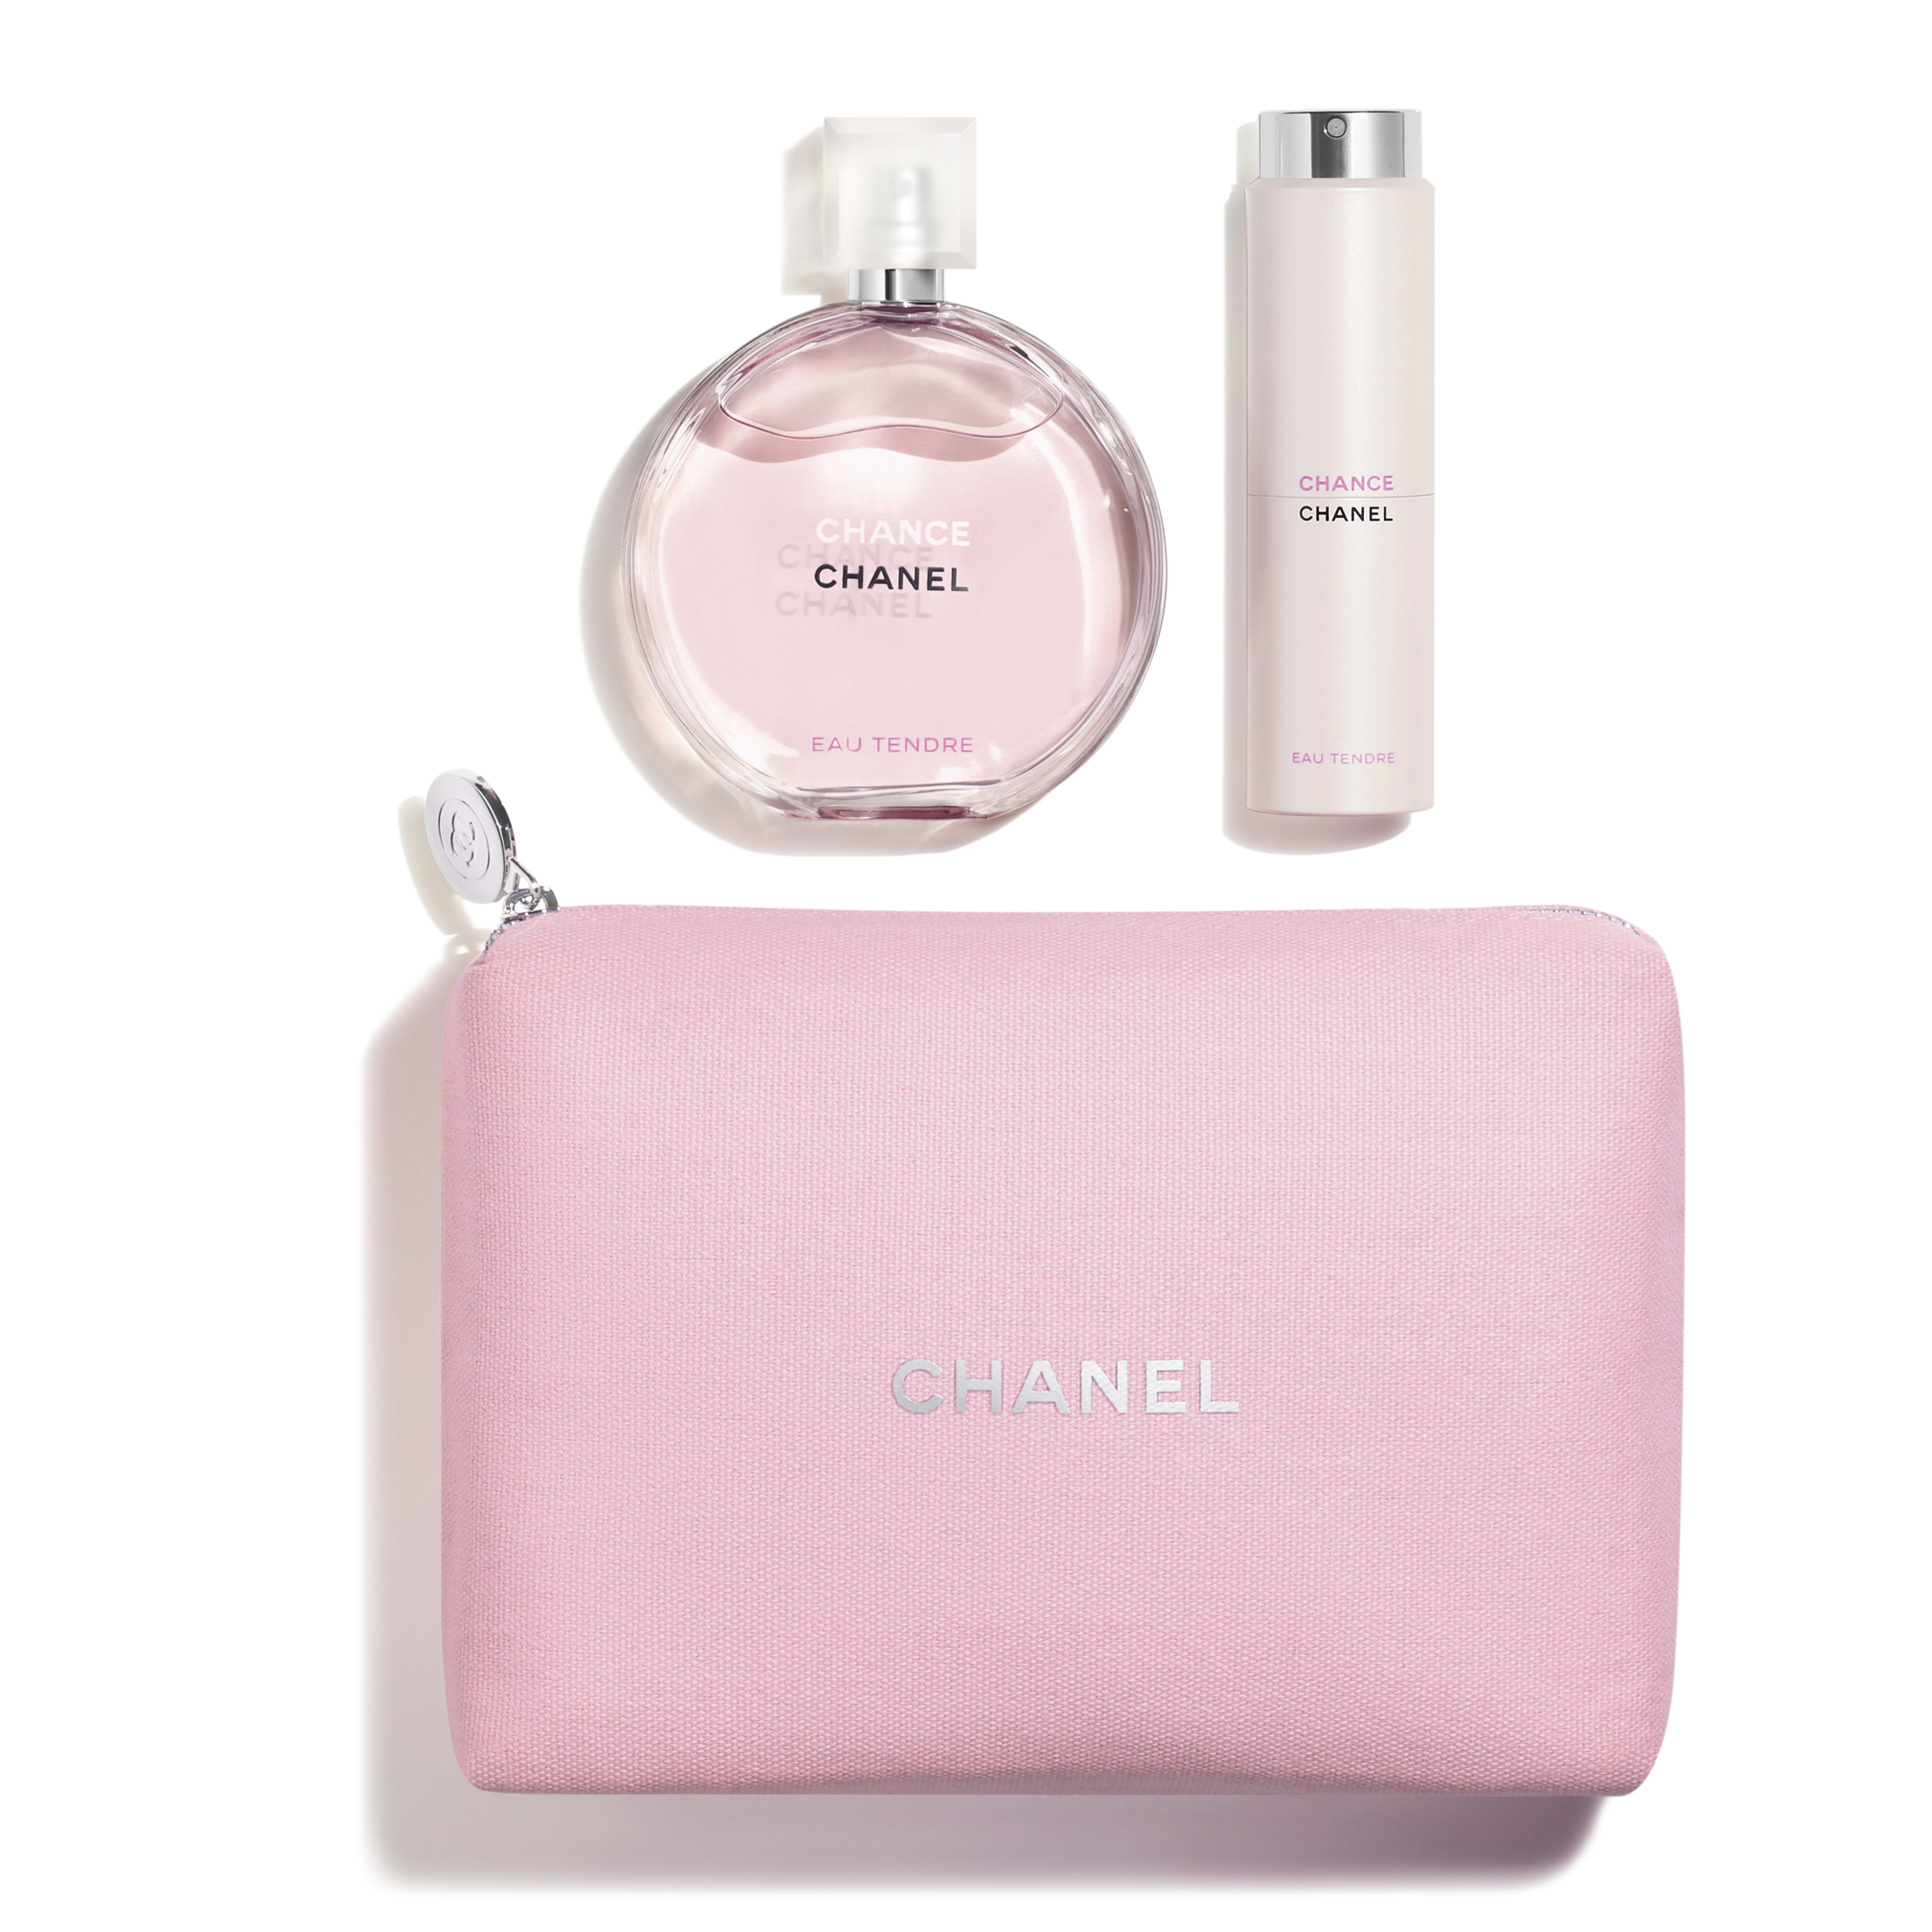 481c49f9ba3 CHANCE EAU TENDRE Eau de Toilette Travel Set